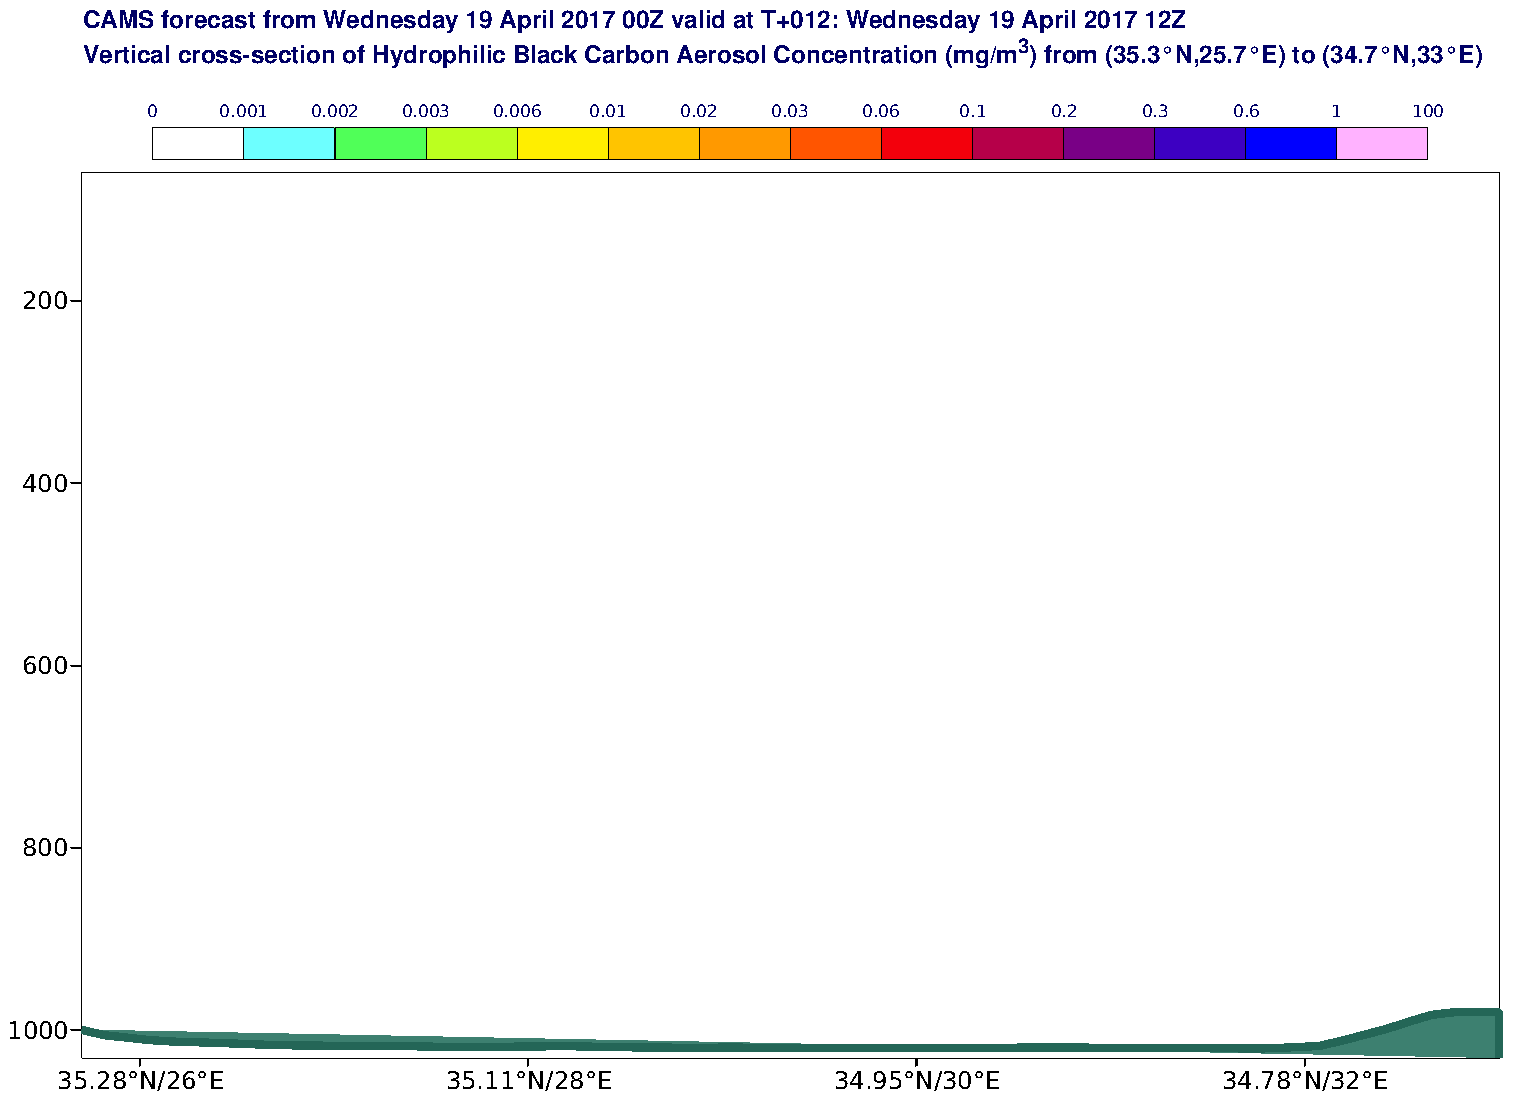 Vertical cross-section of Hydrophilic Black Carbon Aerosol Concentration (mg/m3) valid at T12 - 2017-04-19 12:00